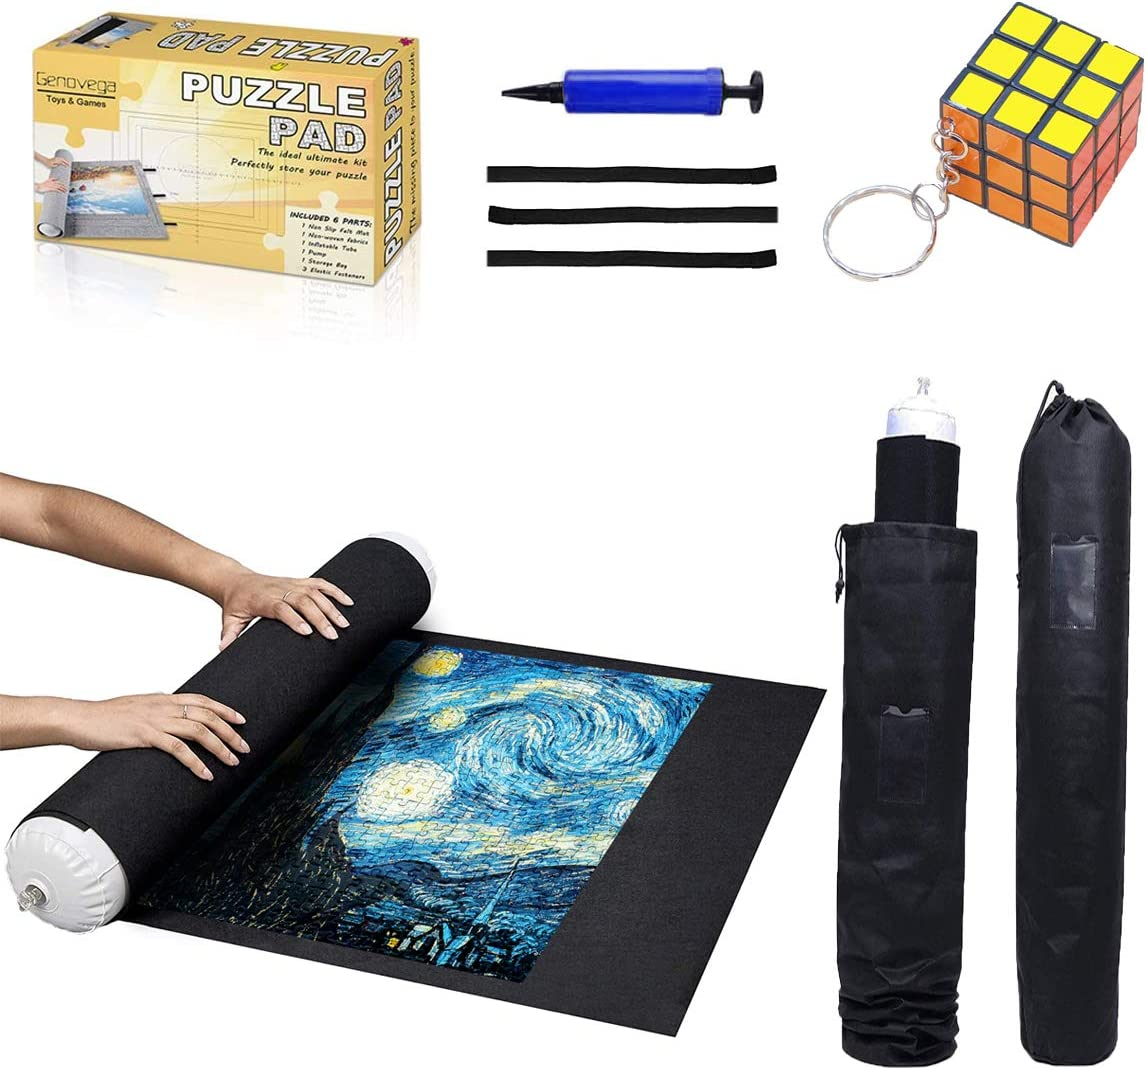 "Puzzle Mat Roll Up - 1000 Pieces and 1500 Pieces - 41"" x 29"" Felt Mat Saver Large Puzzles Board for Adults Kids, Storage and Transport Premium Pump Puzzle Glue Puzzles Felt Mat Inflatable Tube(Black): Toys & Games"